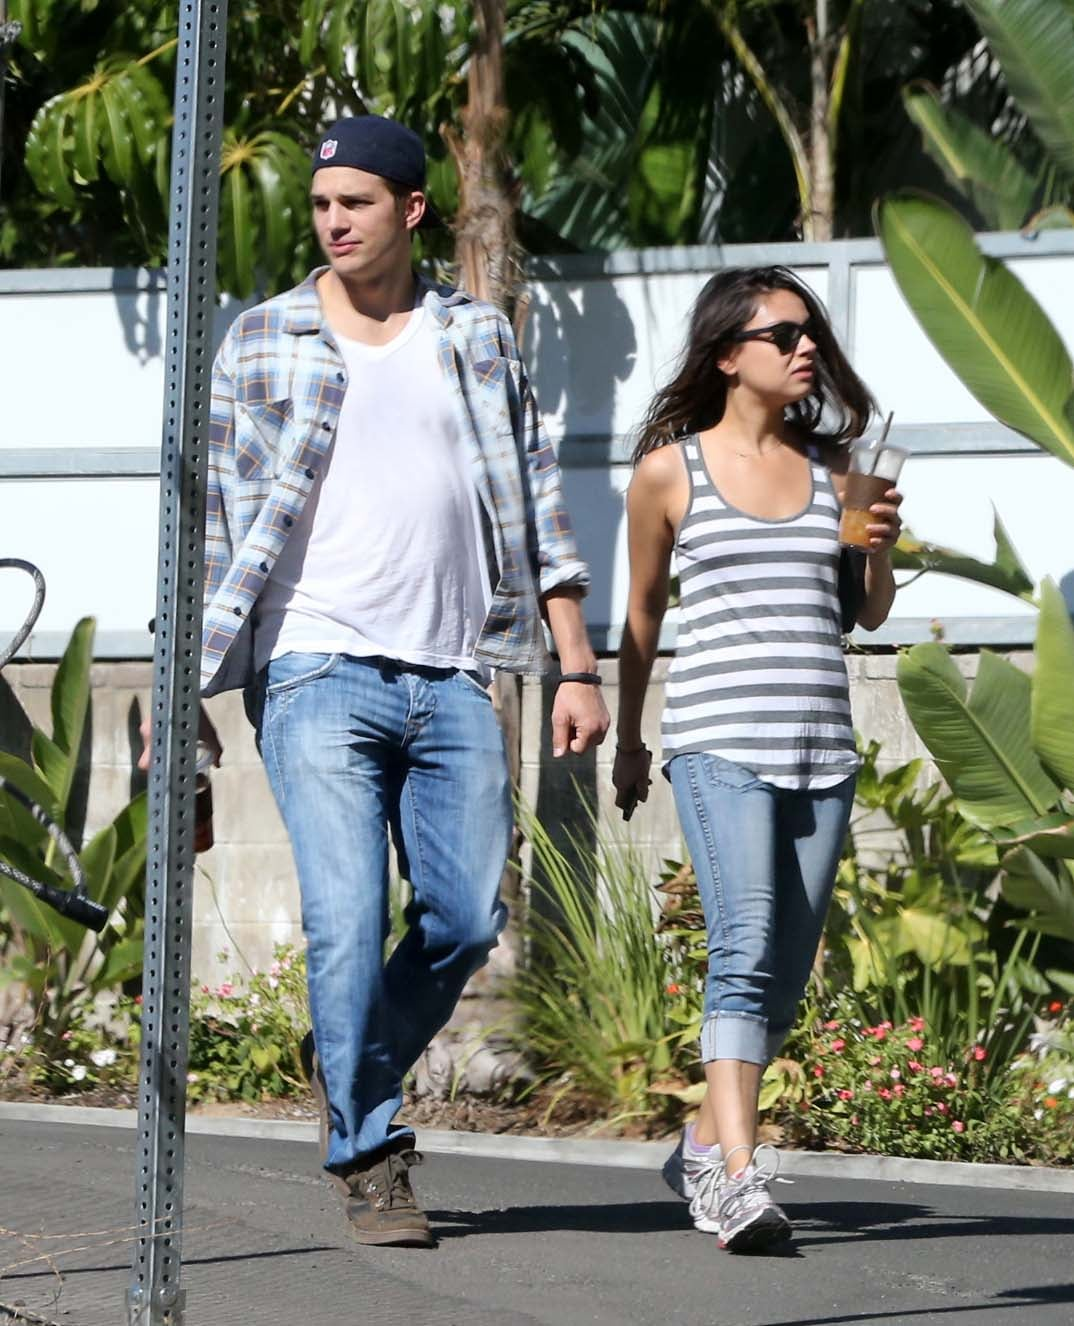 Ashton Kutcher and Mila Kunis were out together in LA.